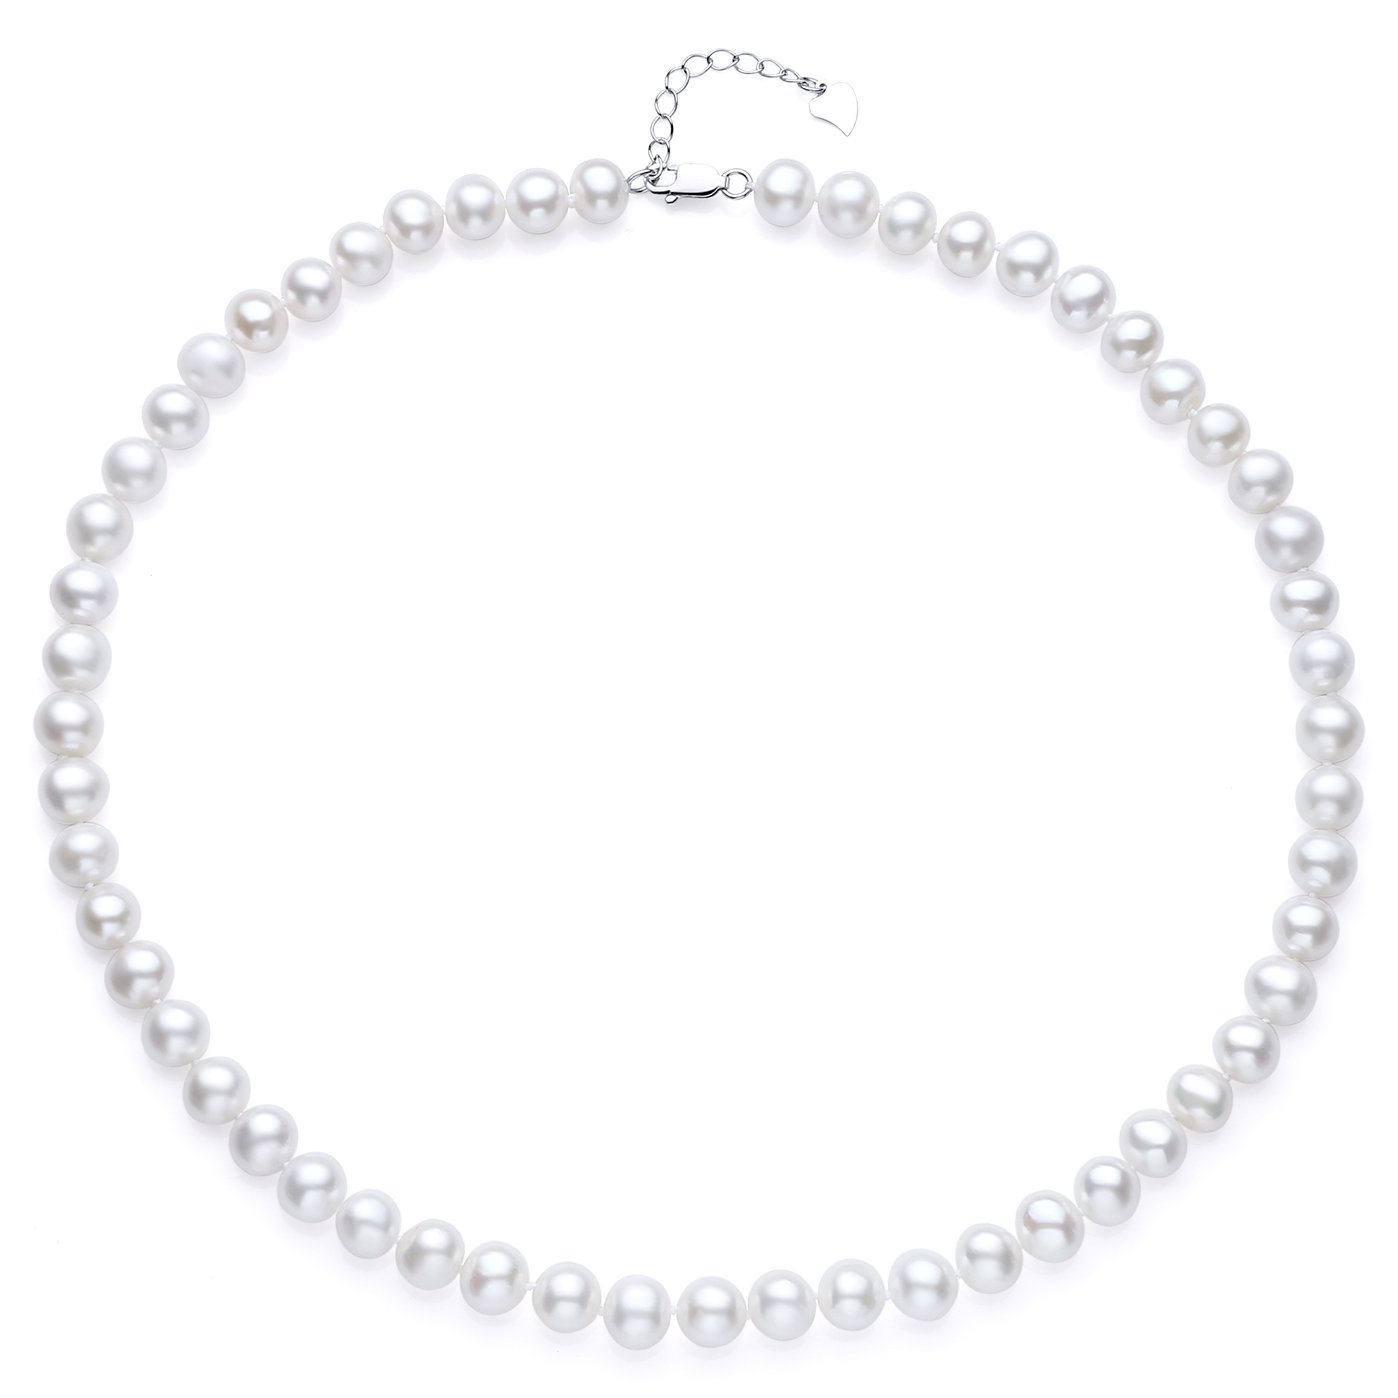 Classic Single Strand 7.5-8mm White Freshwater Cultured Pearl Necklace, Princess Length 18''